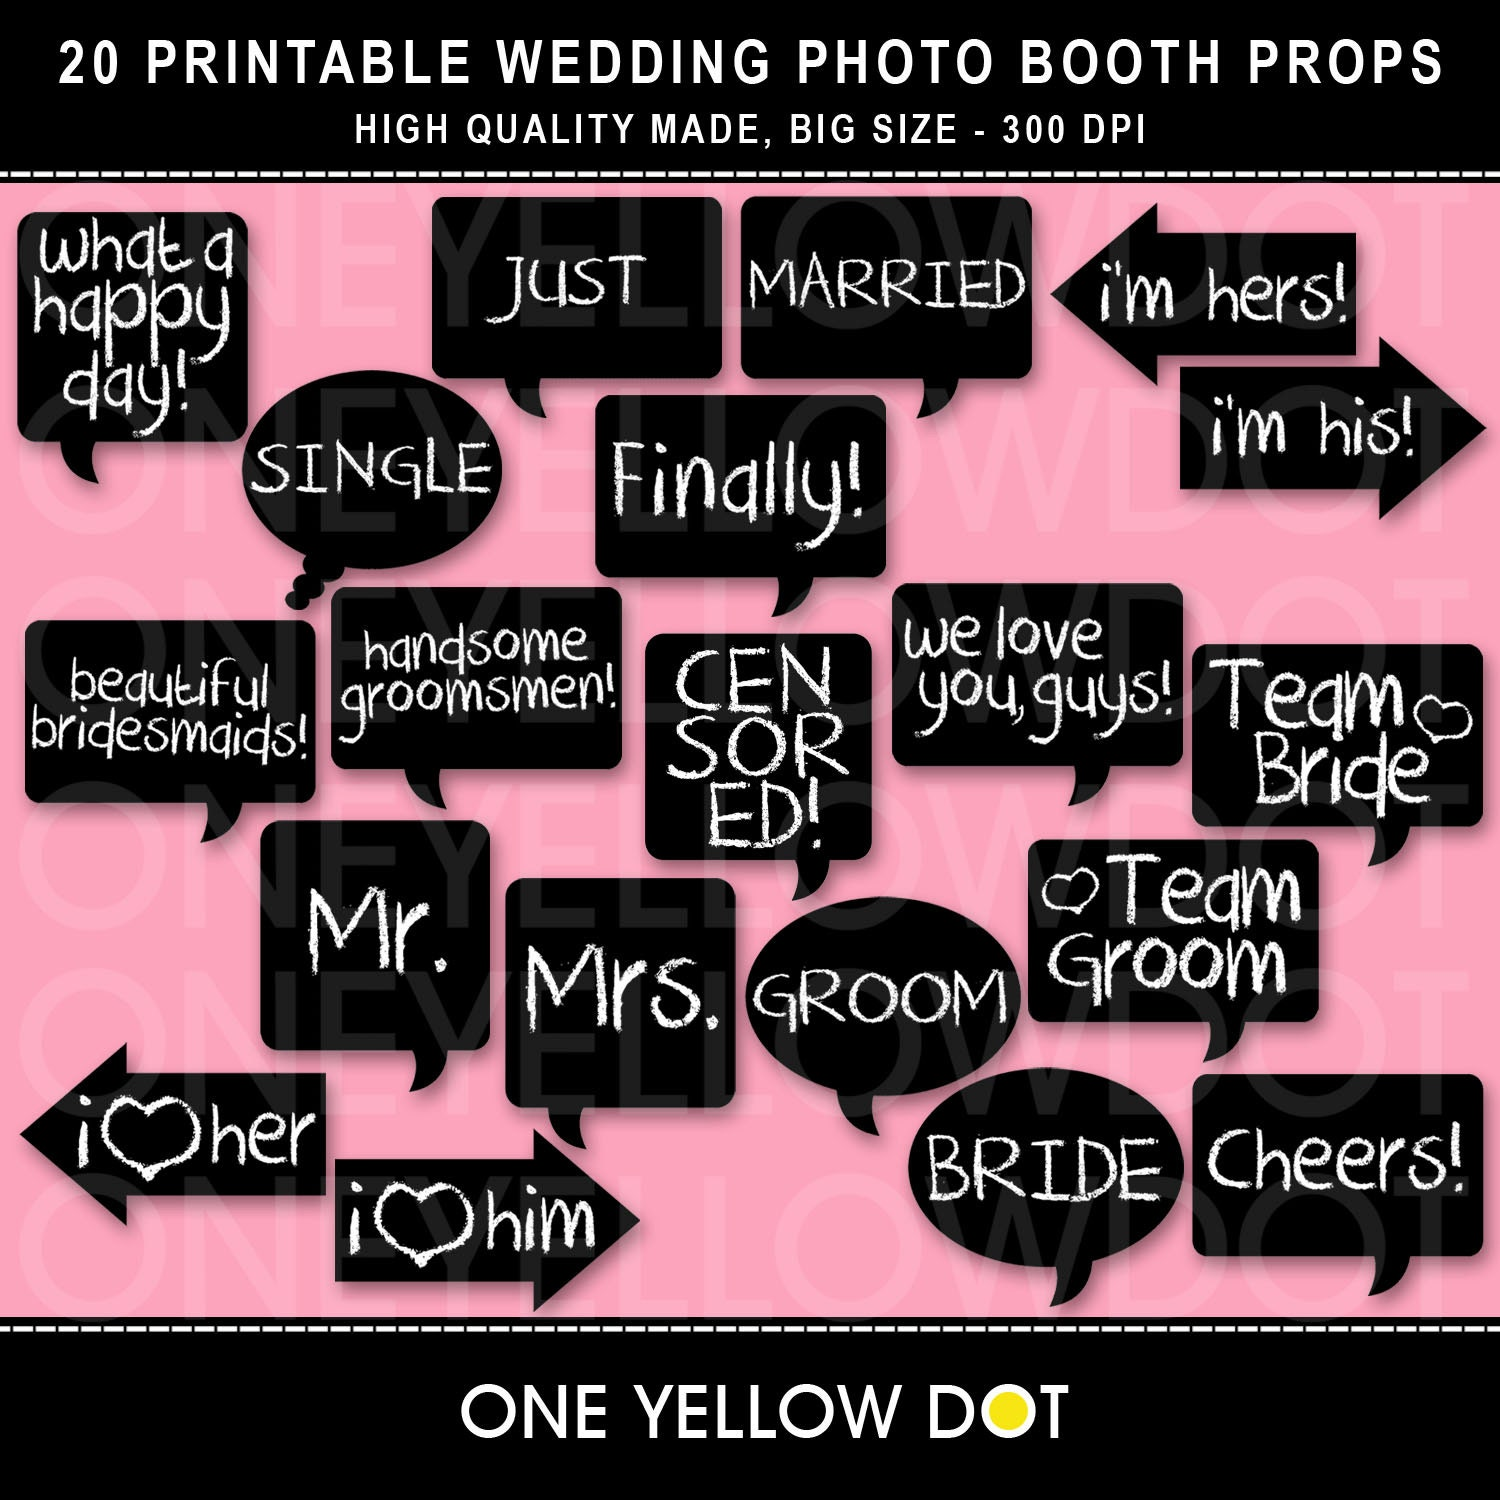 Wedding Photo Props Ideas: INSTANT DOWNLOAD Wedding Photo Booth Props Printable PDF